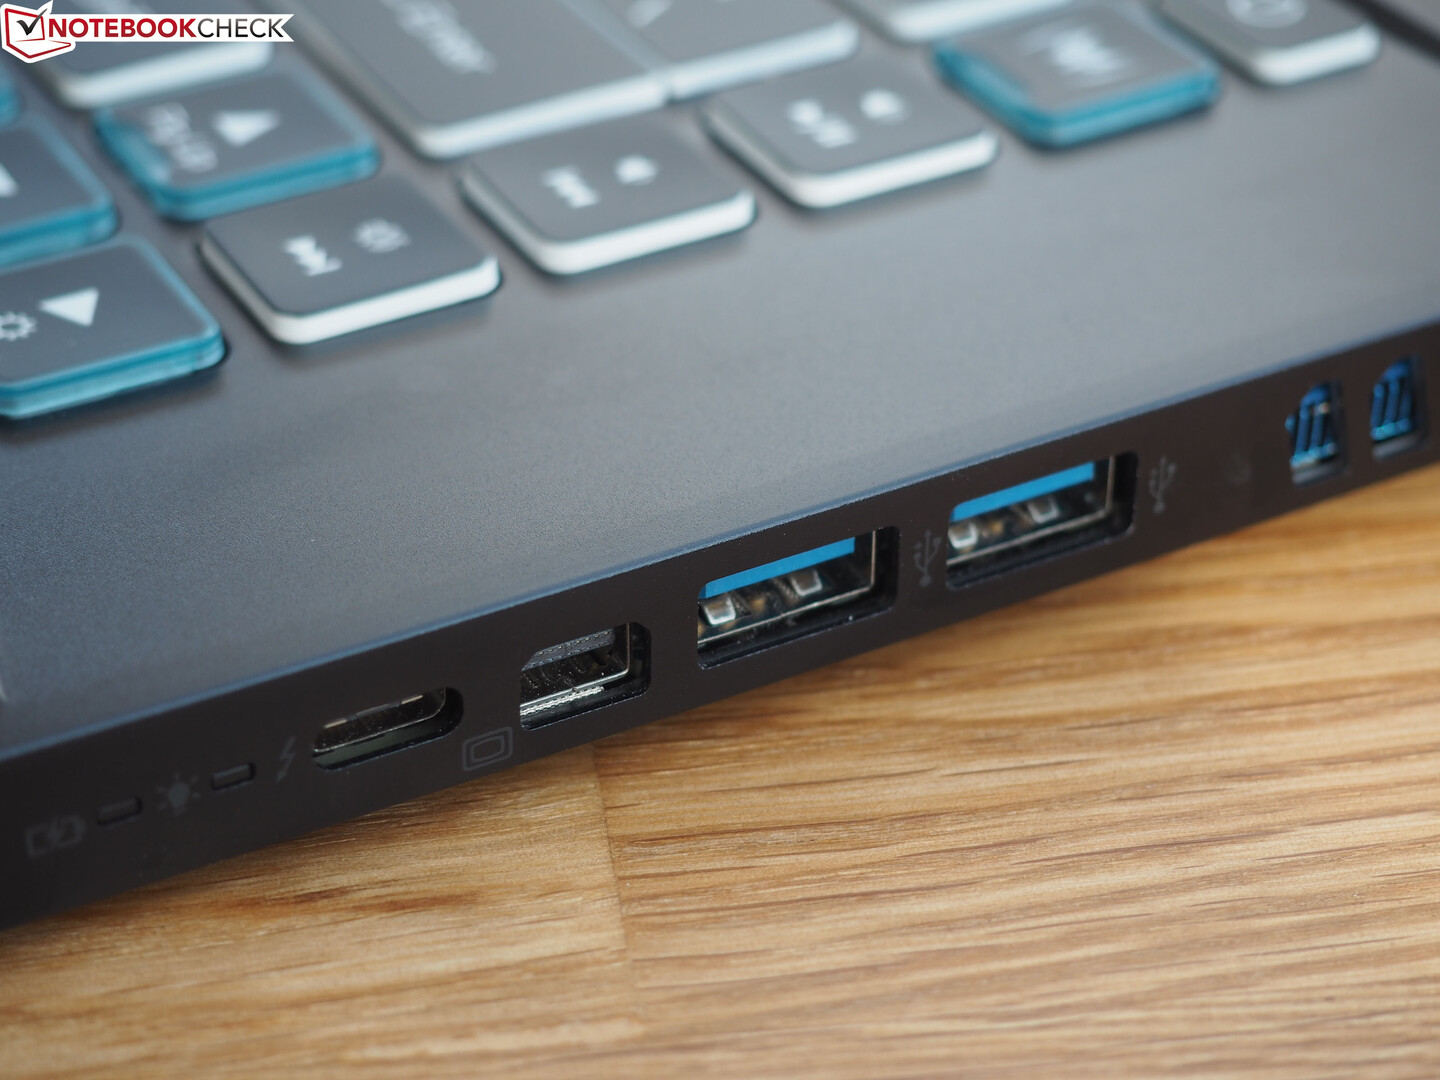 Acer Predator Triton 500 Laptop Review: A Lot of Gaming